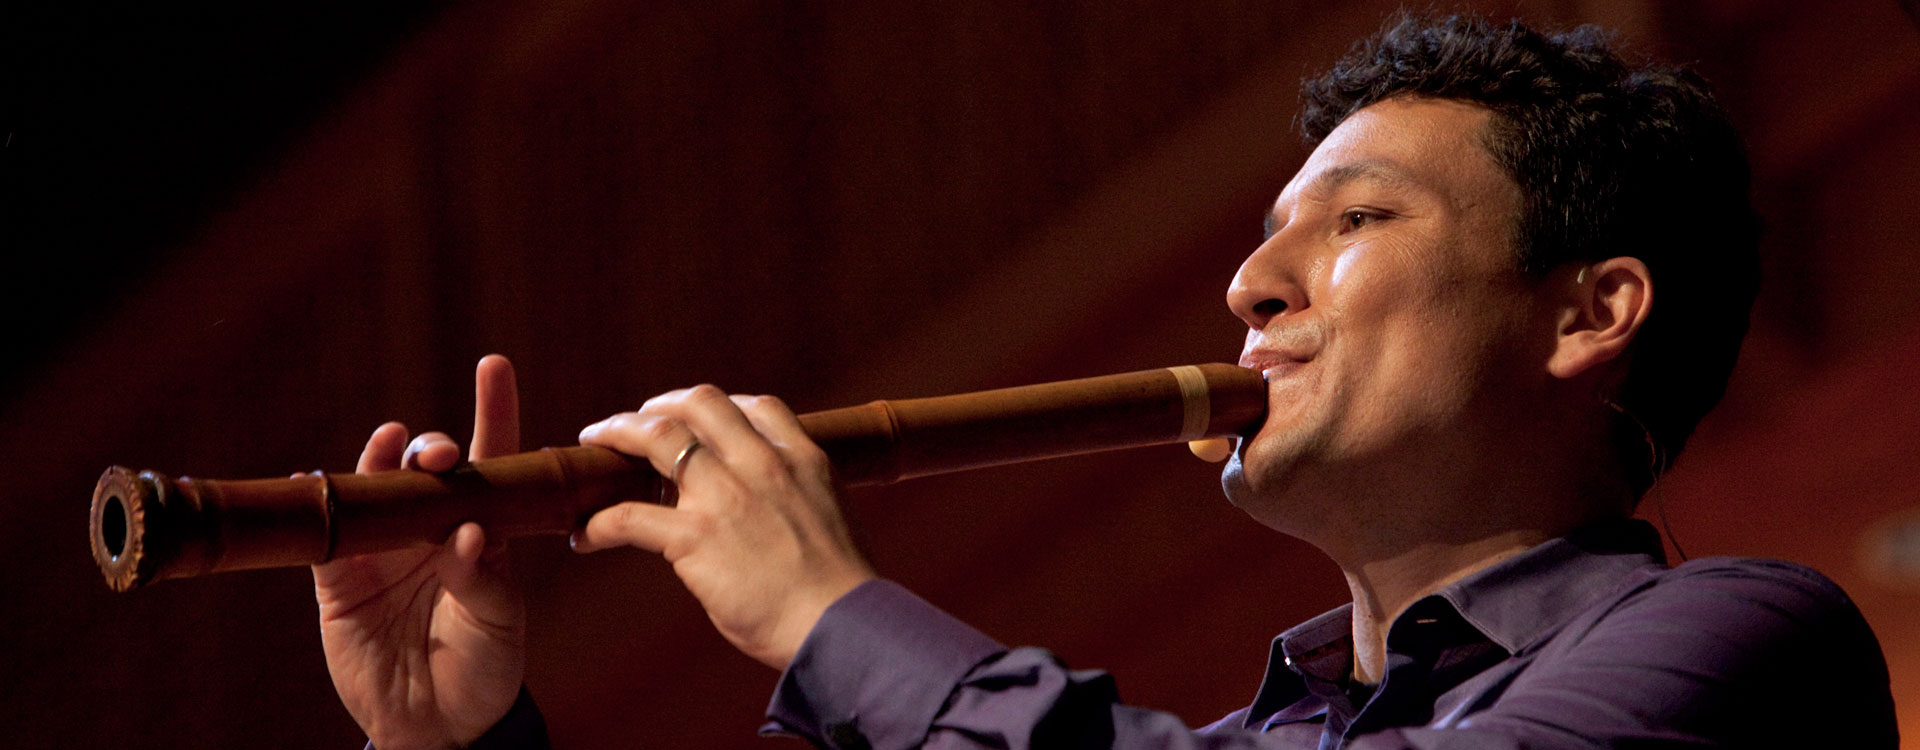 The Silkroad Ensemble with Yo-Yo Ma live from Tanglewood